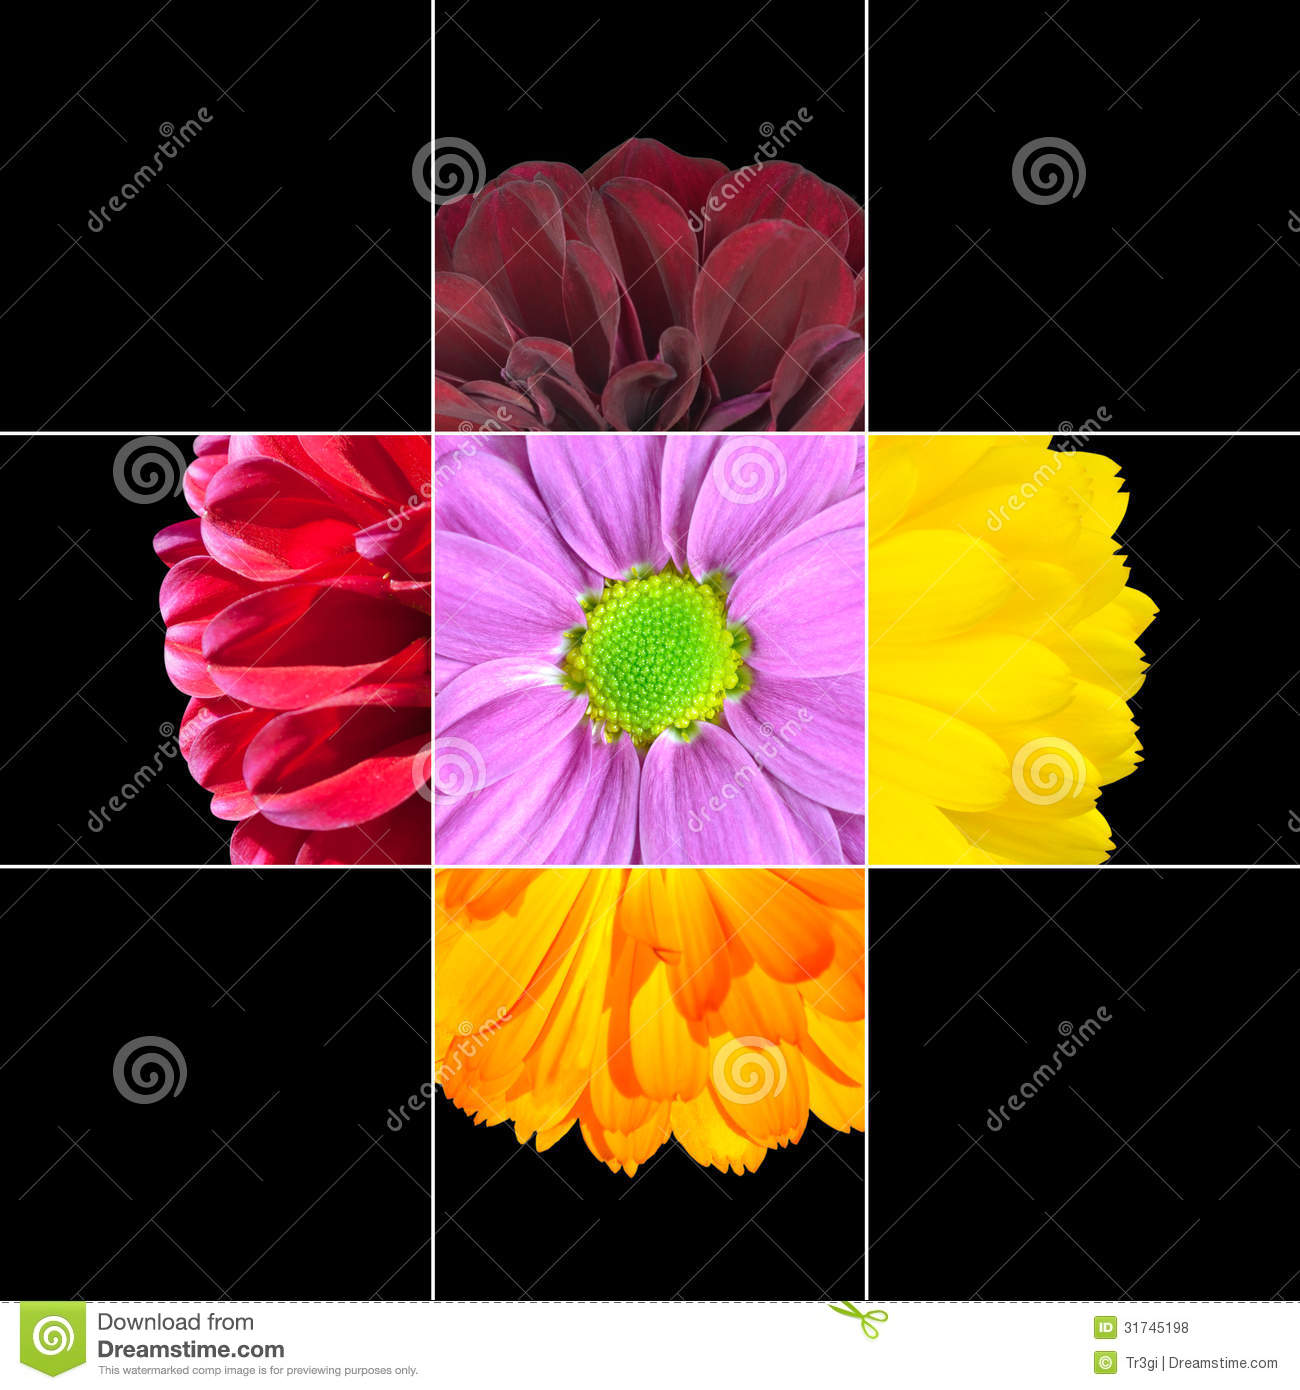 Colorful daisy flower mosaic design stock photo image of closeup colorful daisy flower mosaic design which is consisting of 9 squares on 3x3 grid with parts of daisy or dahlia flower izmirmasajfo